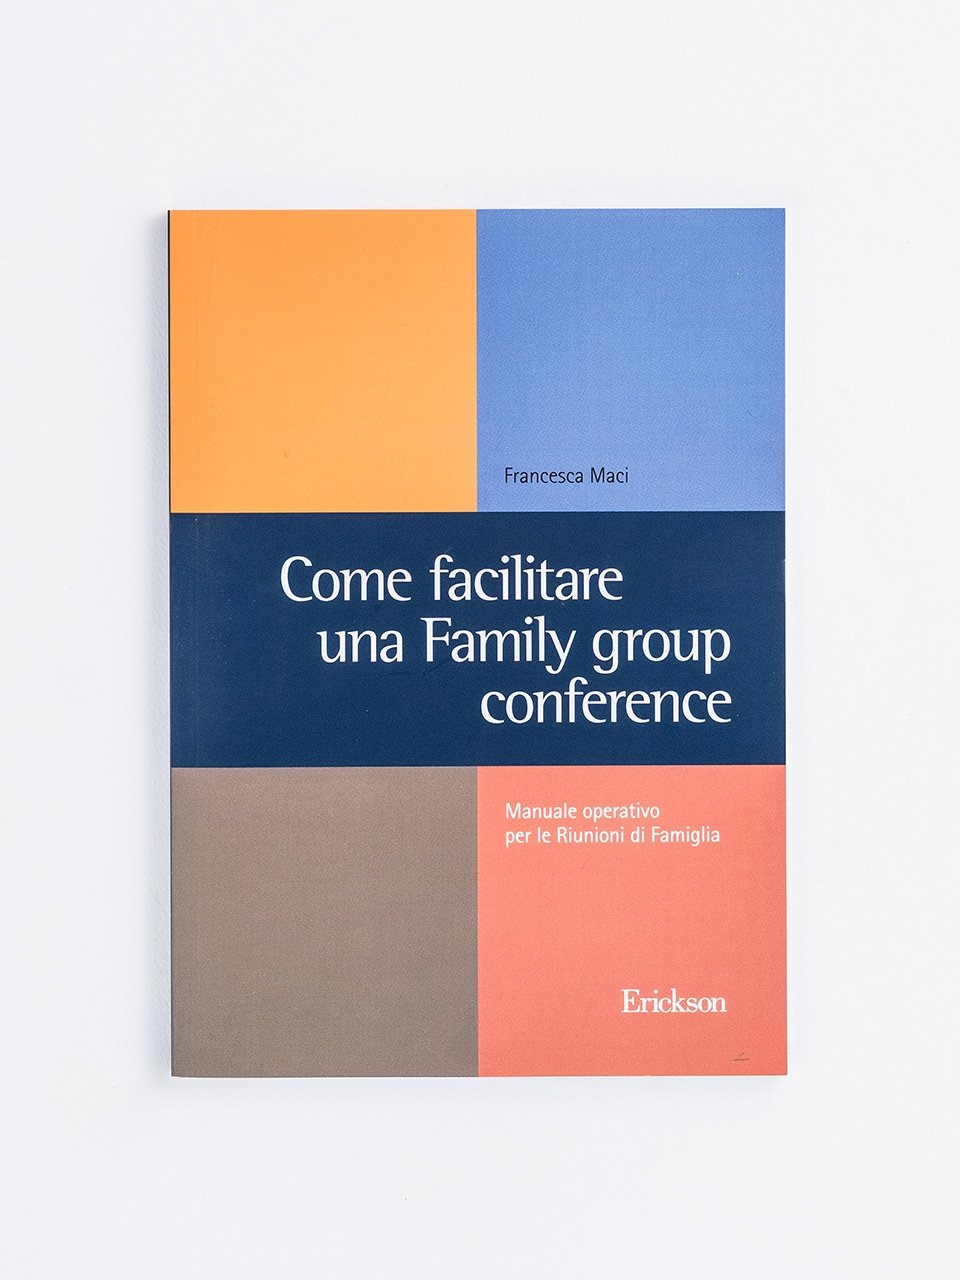 Come facilitare una Family group conference - ADHD e compiti a casa - Libri - Erickson